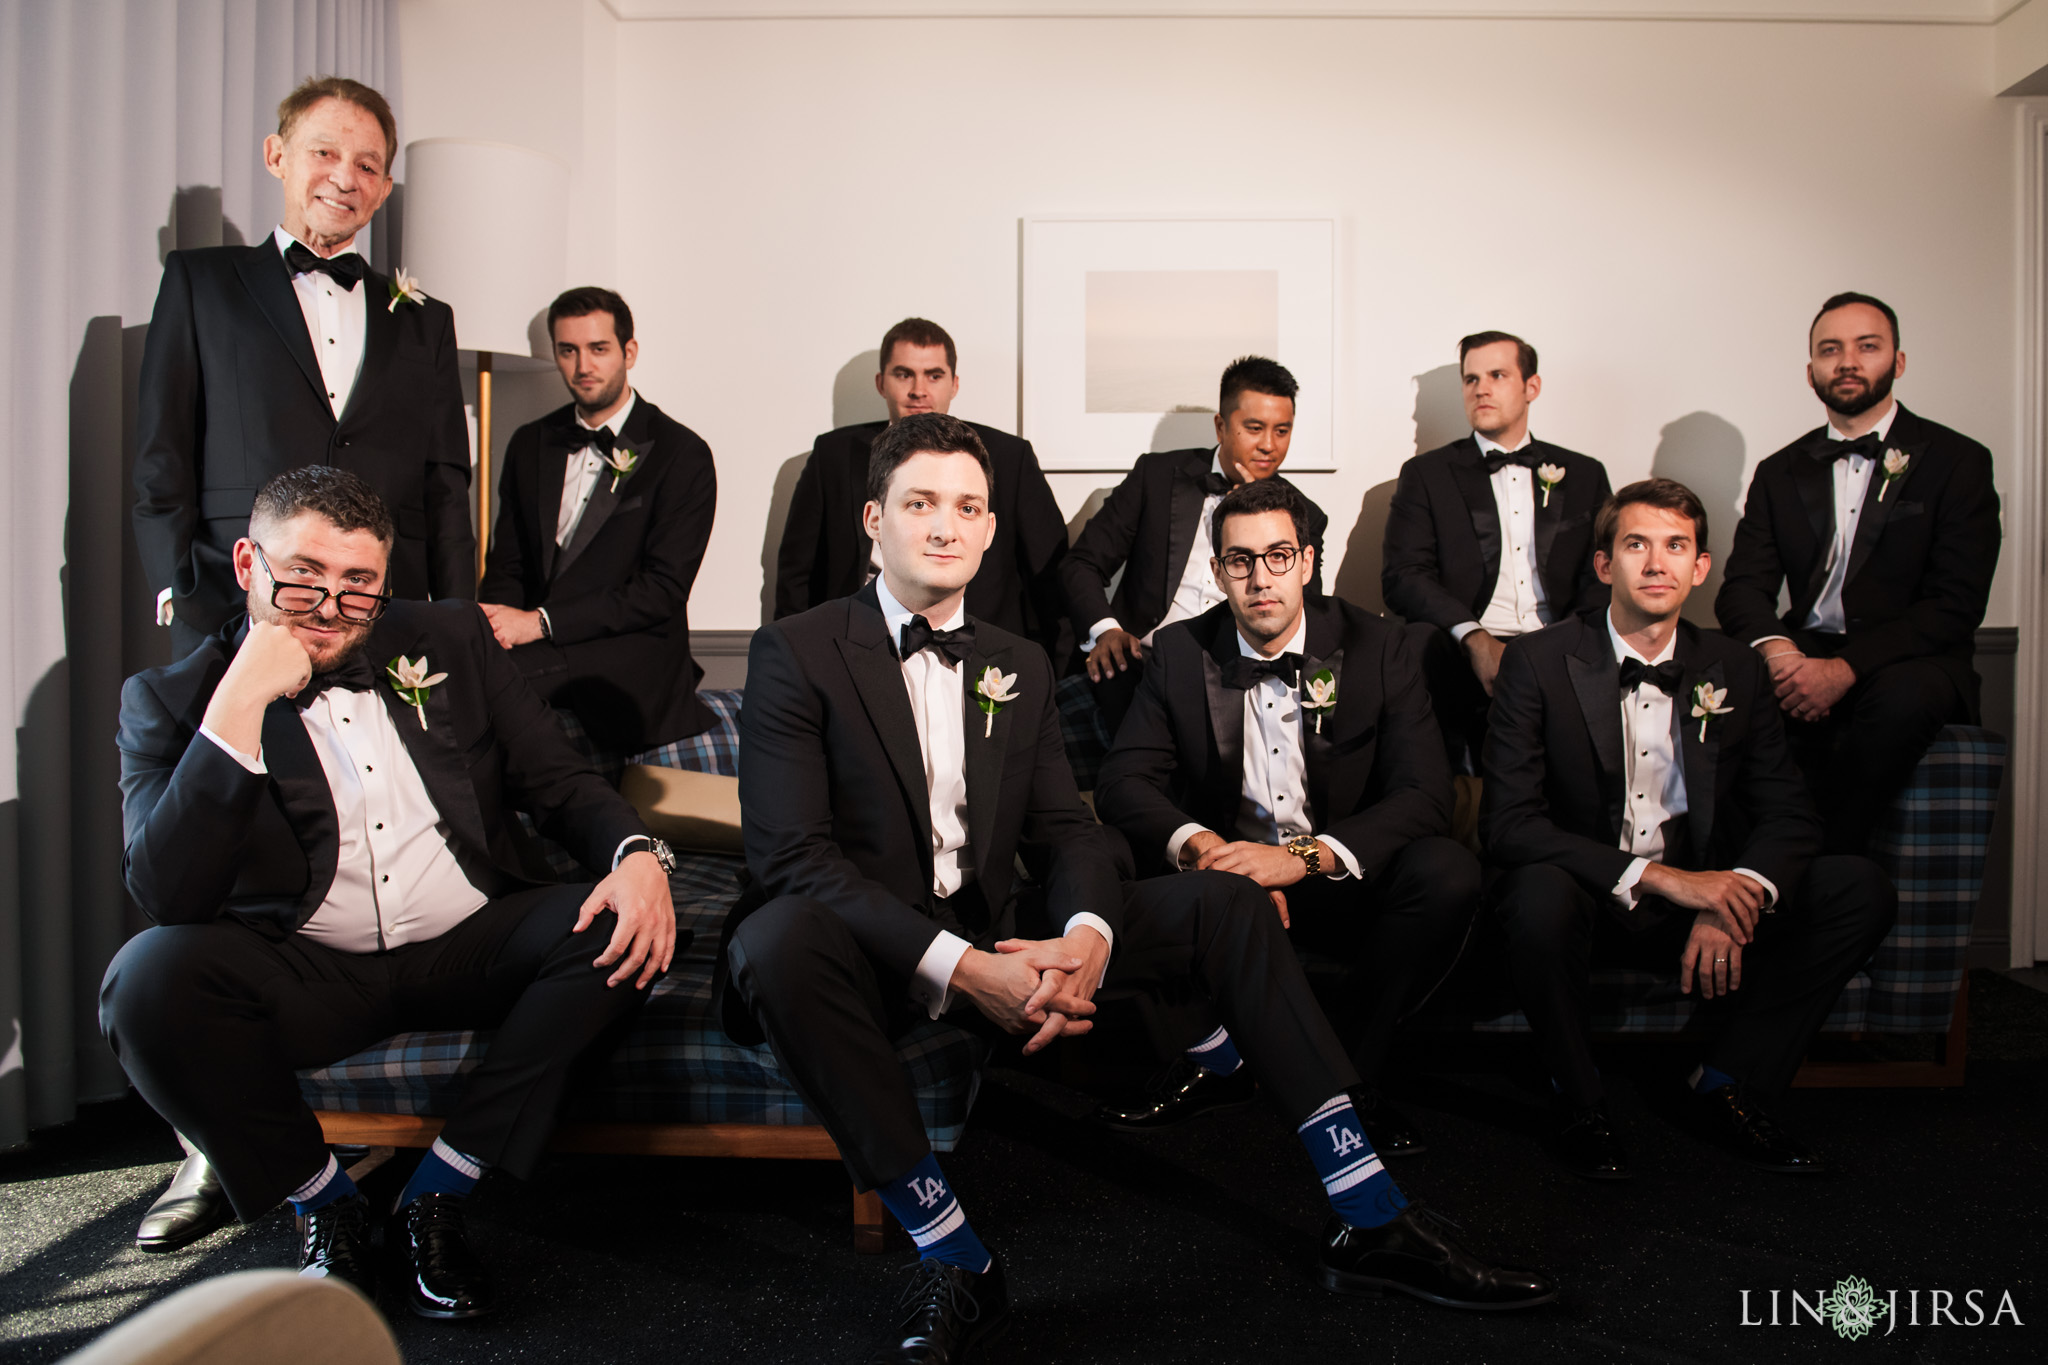 013 museum of art san diego groomsmen wedding photography